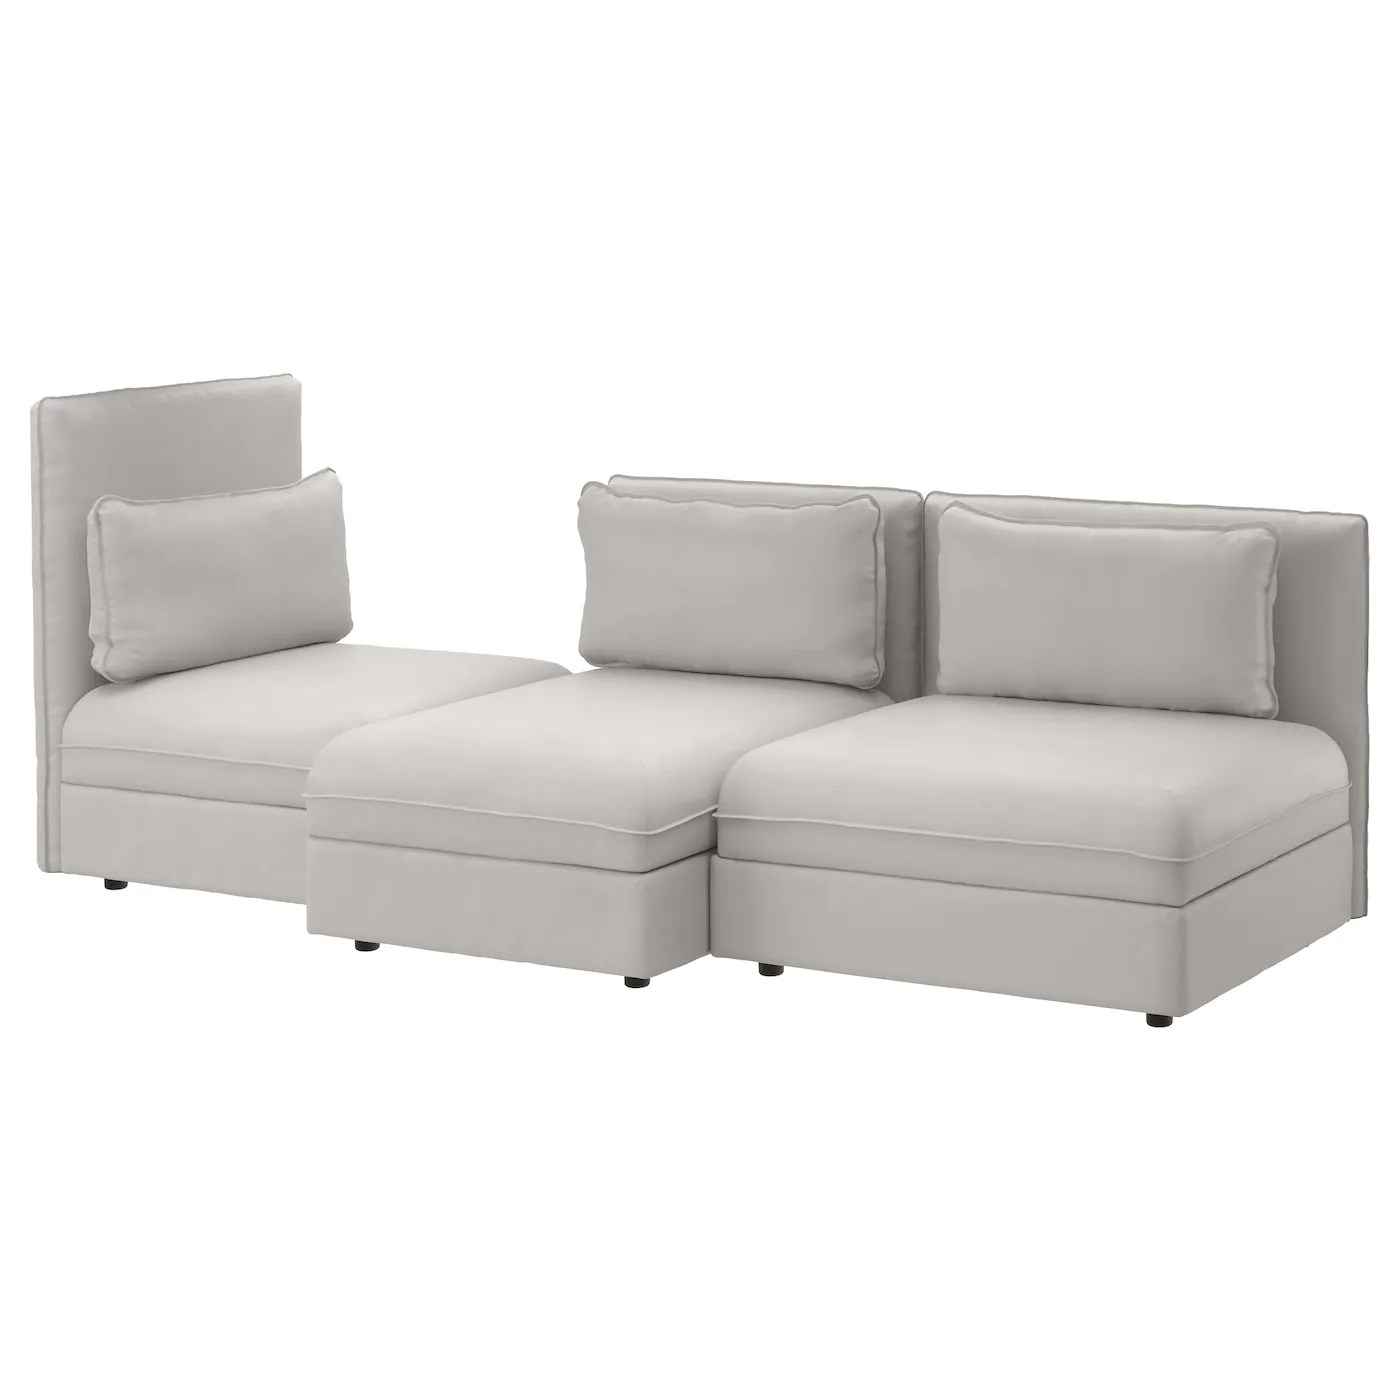 Sofas Ikea Tres Plazas Vallentuna 3 Seat Sofa Ramna Light Grey Ikea